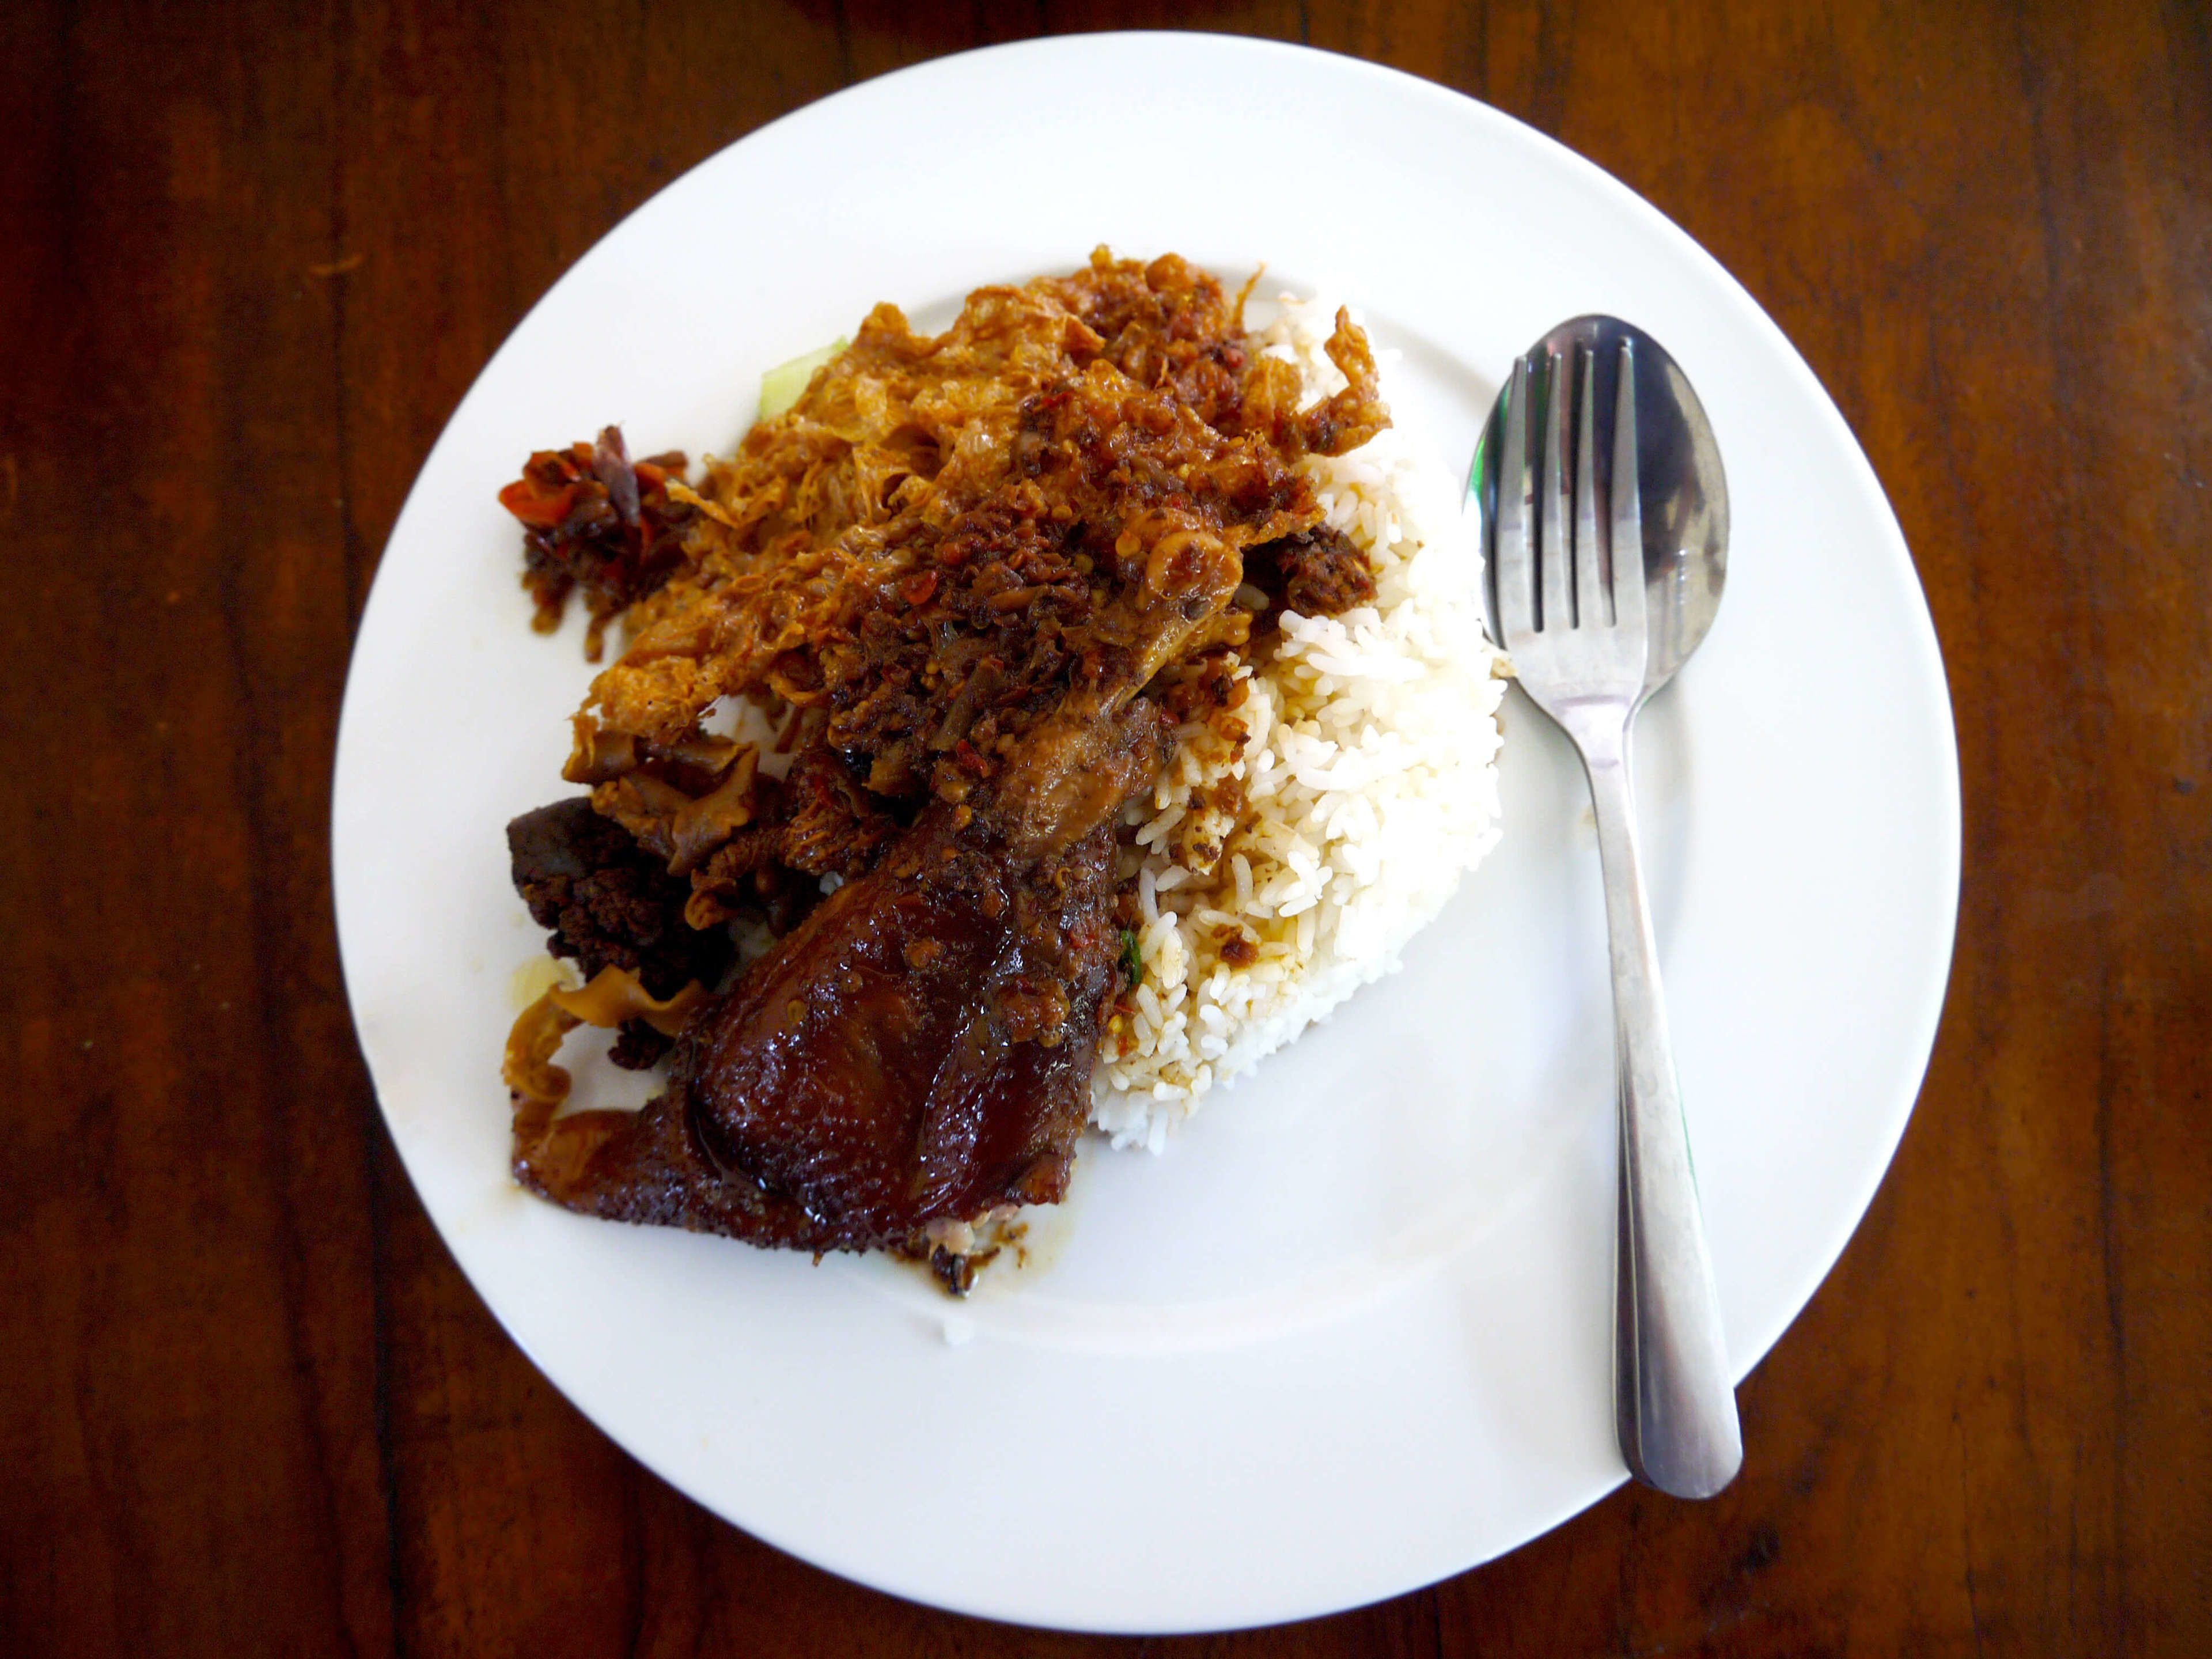 A plate of Indonesian food